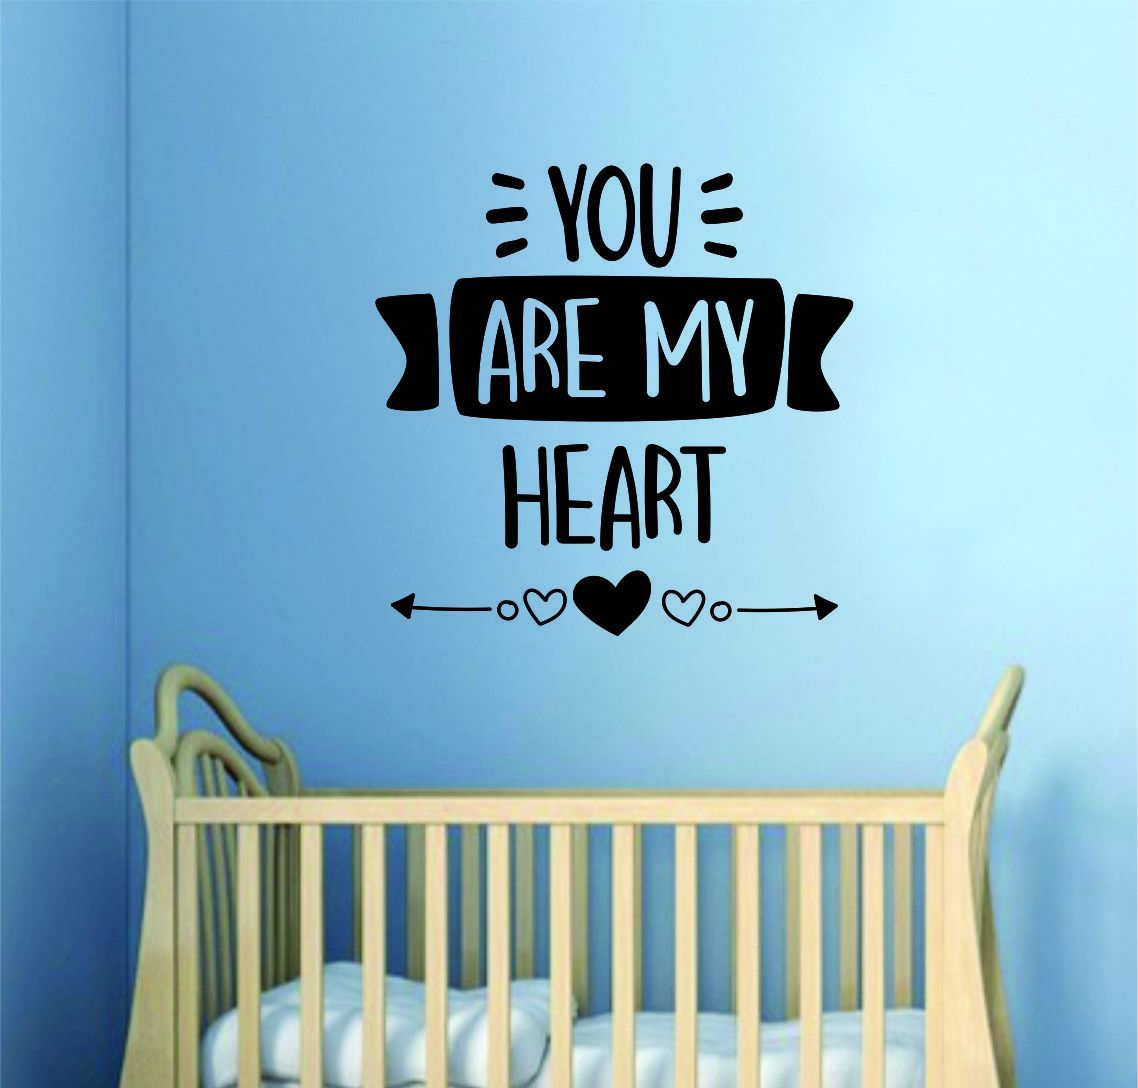 You Are My Heart Decal Sticker Wall Vinyl Art Wall Bedroom Room Home Decor Inspirational Kids Baby Nursery Playroom Son Daughter - black